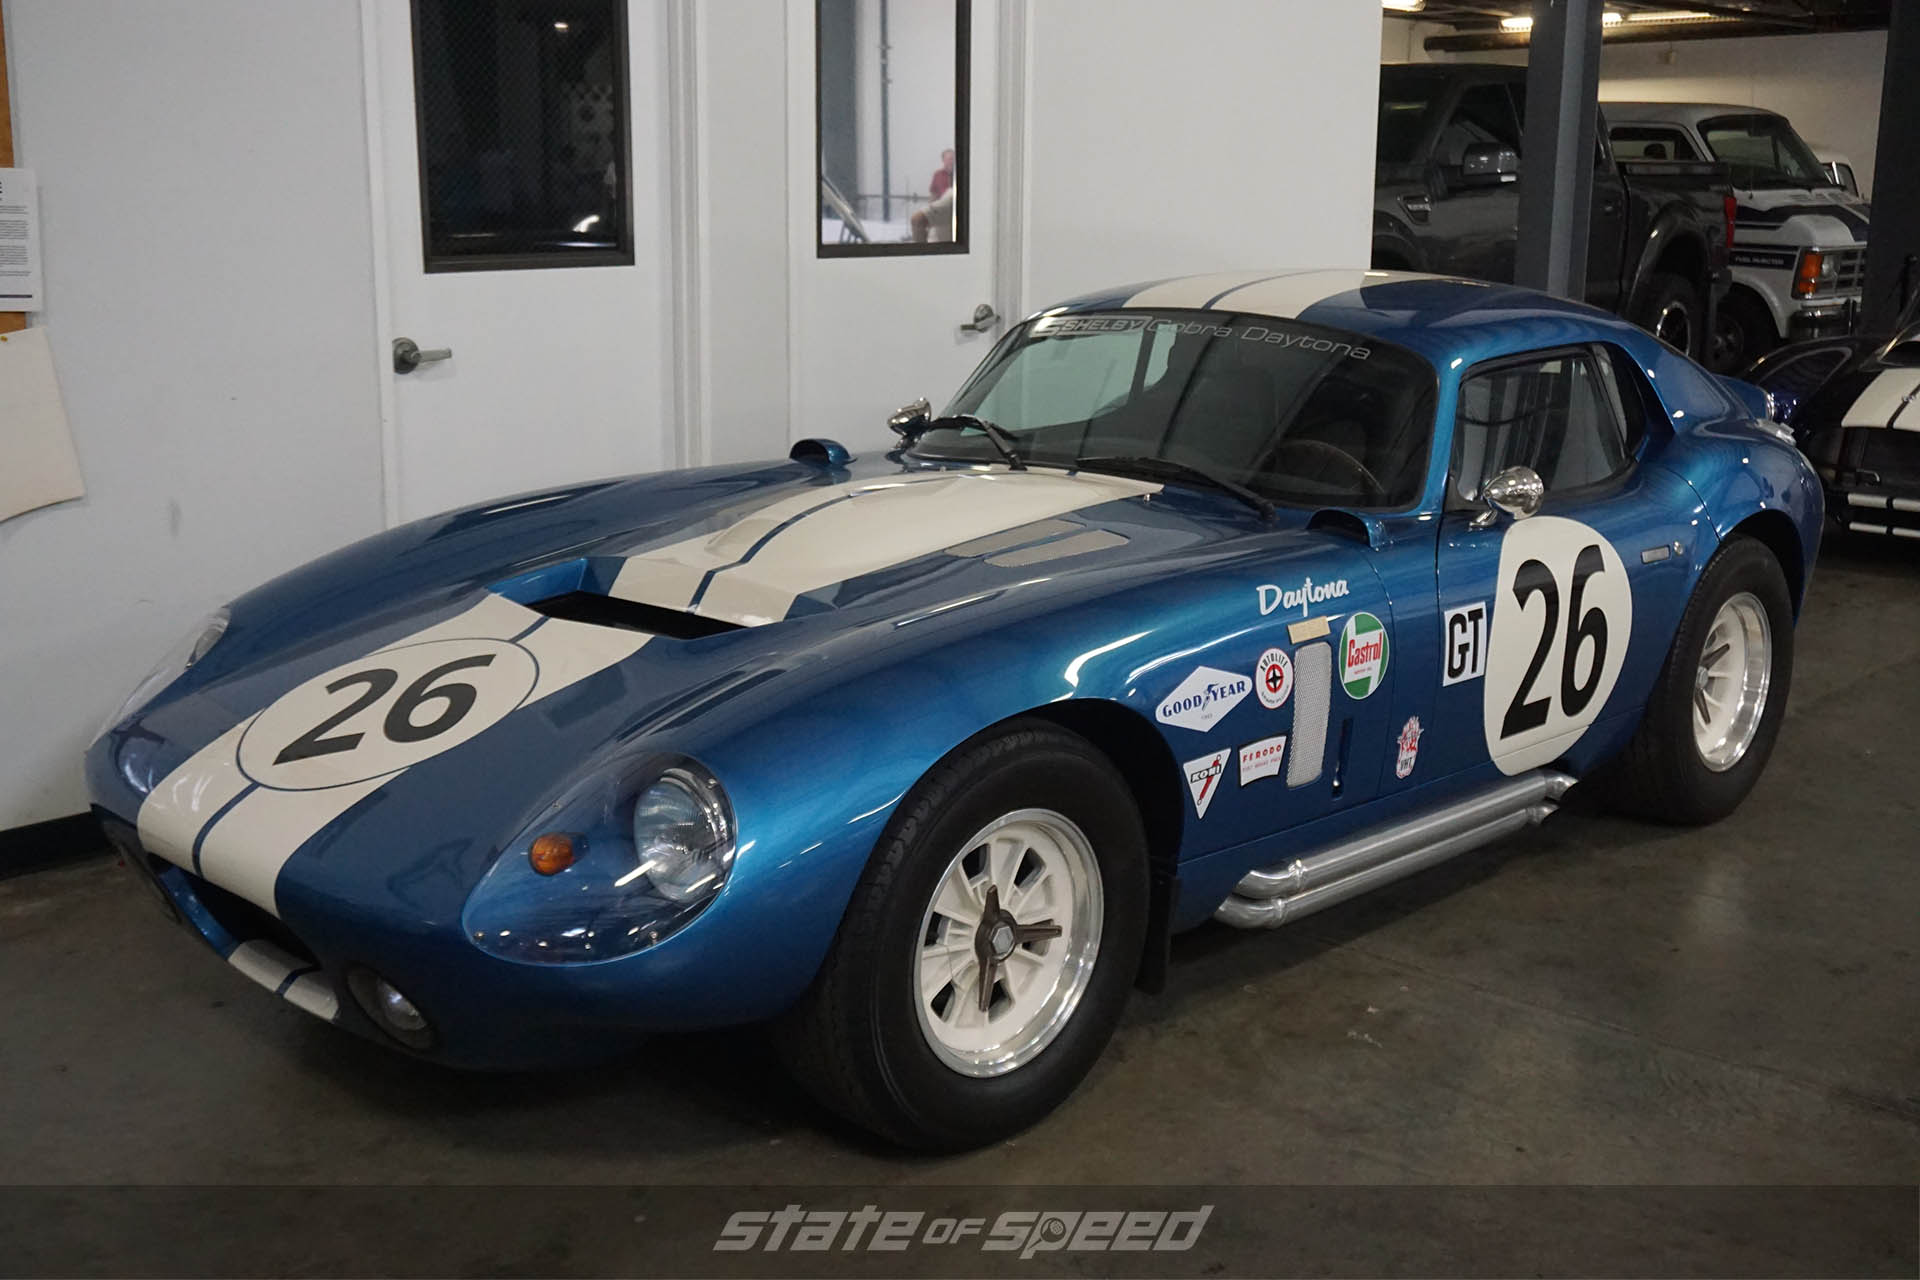 Cobra Daytona at the 21st Shelby American Reunion